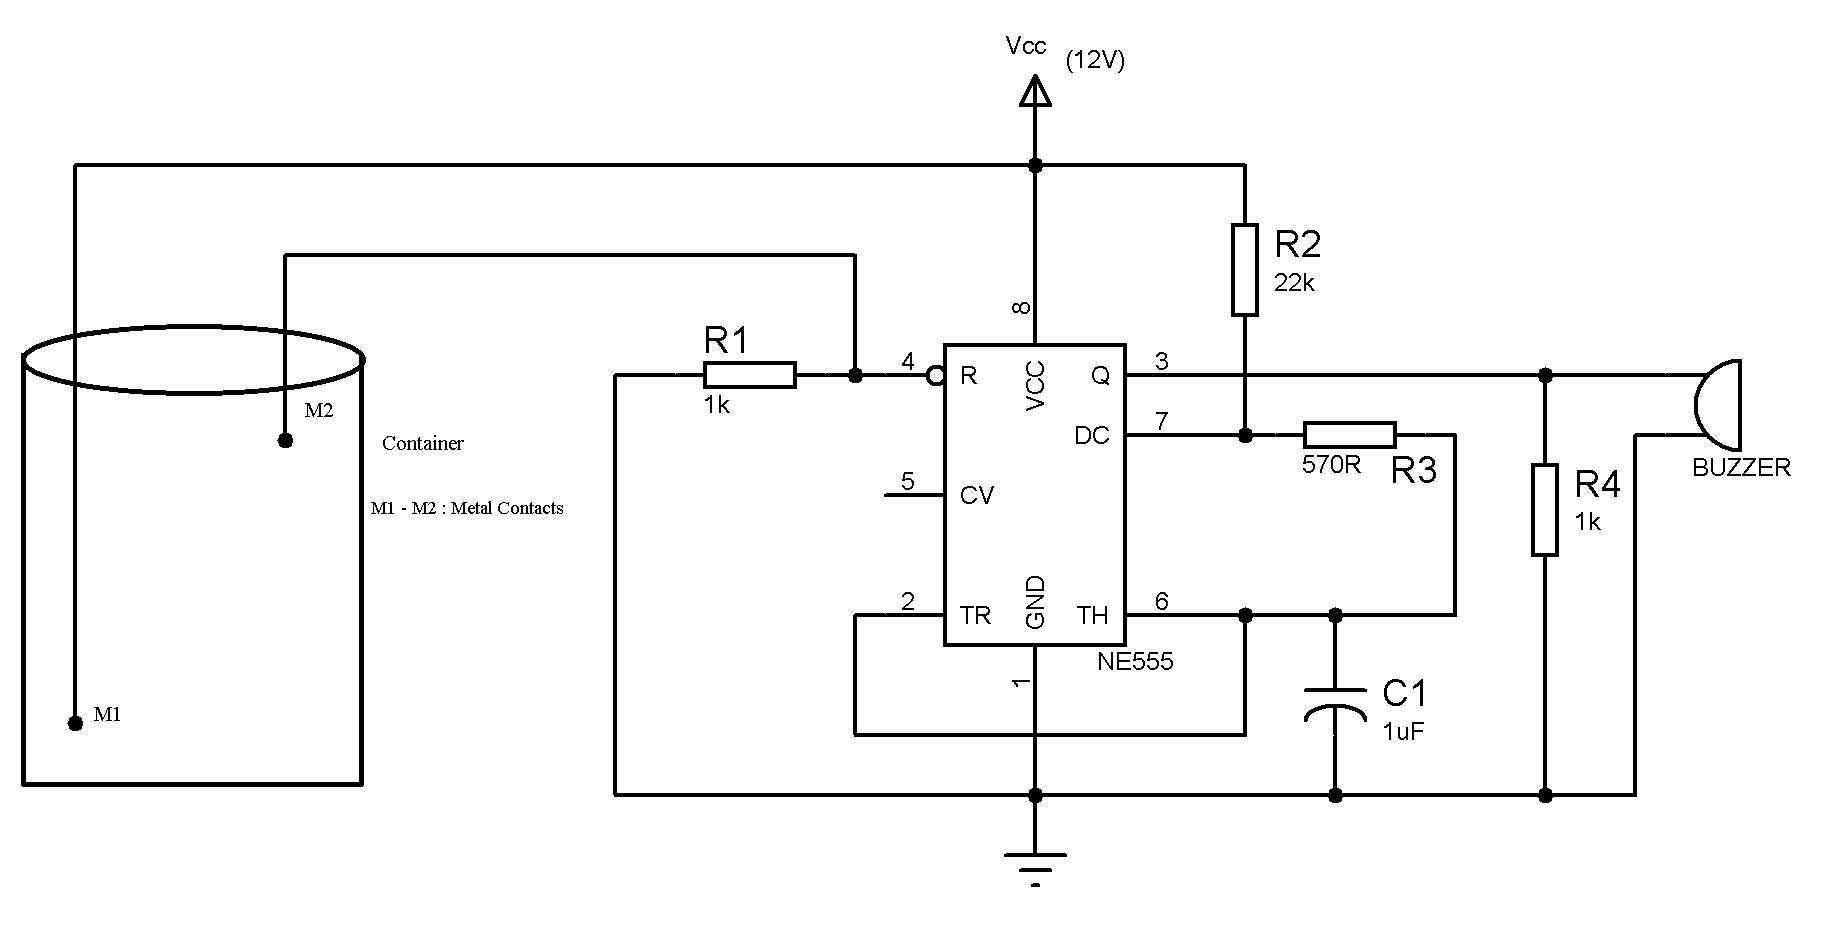 hight resolution of sensor light switch circuit diagram besides water level sensor simple water level indicator with alarm